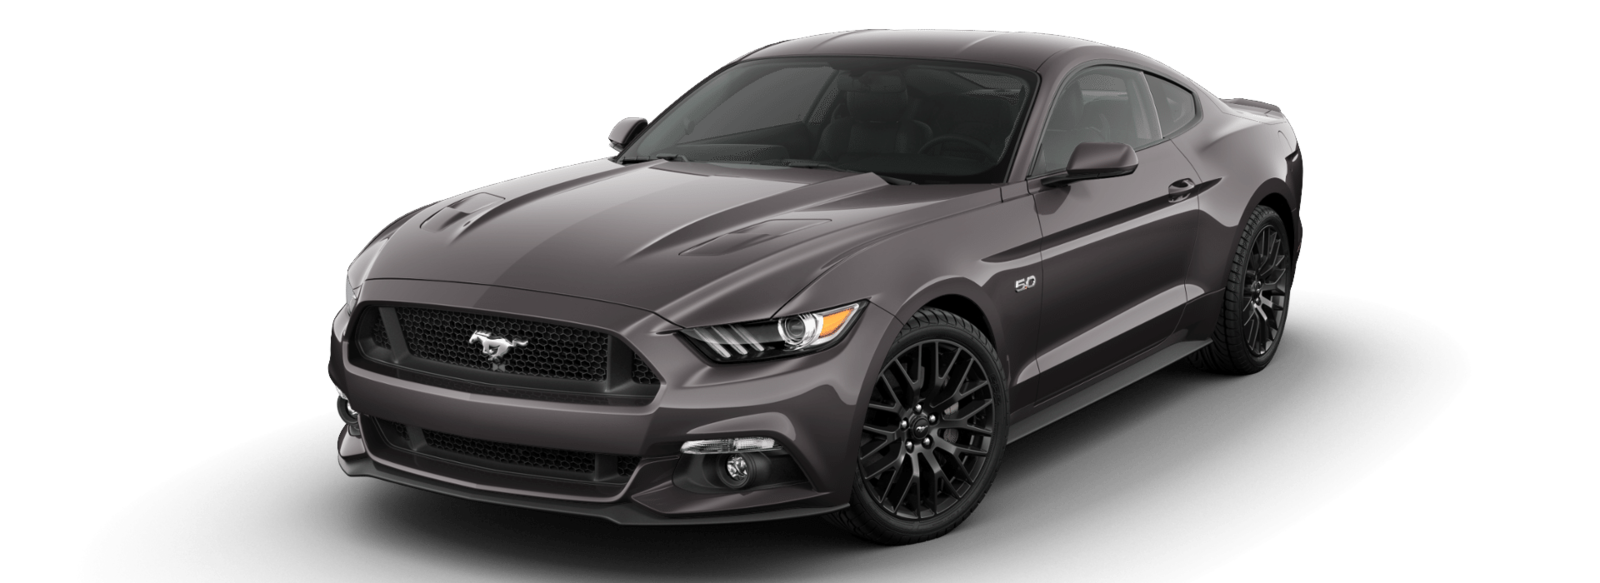 What colour is your car - This Shiny Deep Grey Gives Your Mustang A Sophisticated Sober Appearance It S A Practical Choice Given Grey S Huge Popularity As A Car Colour